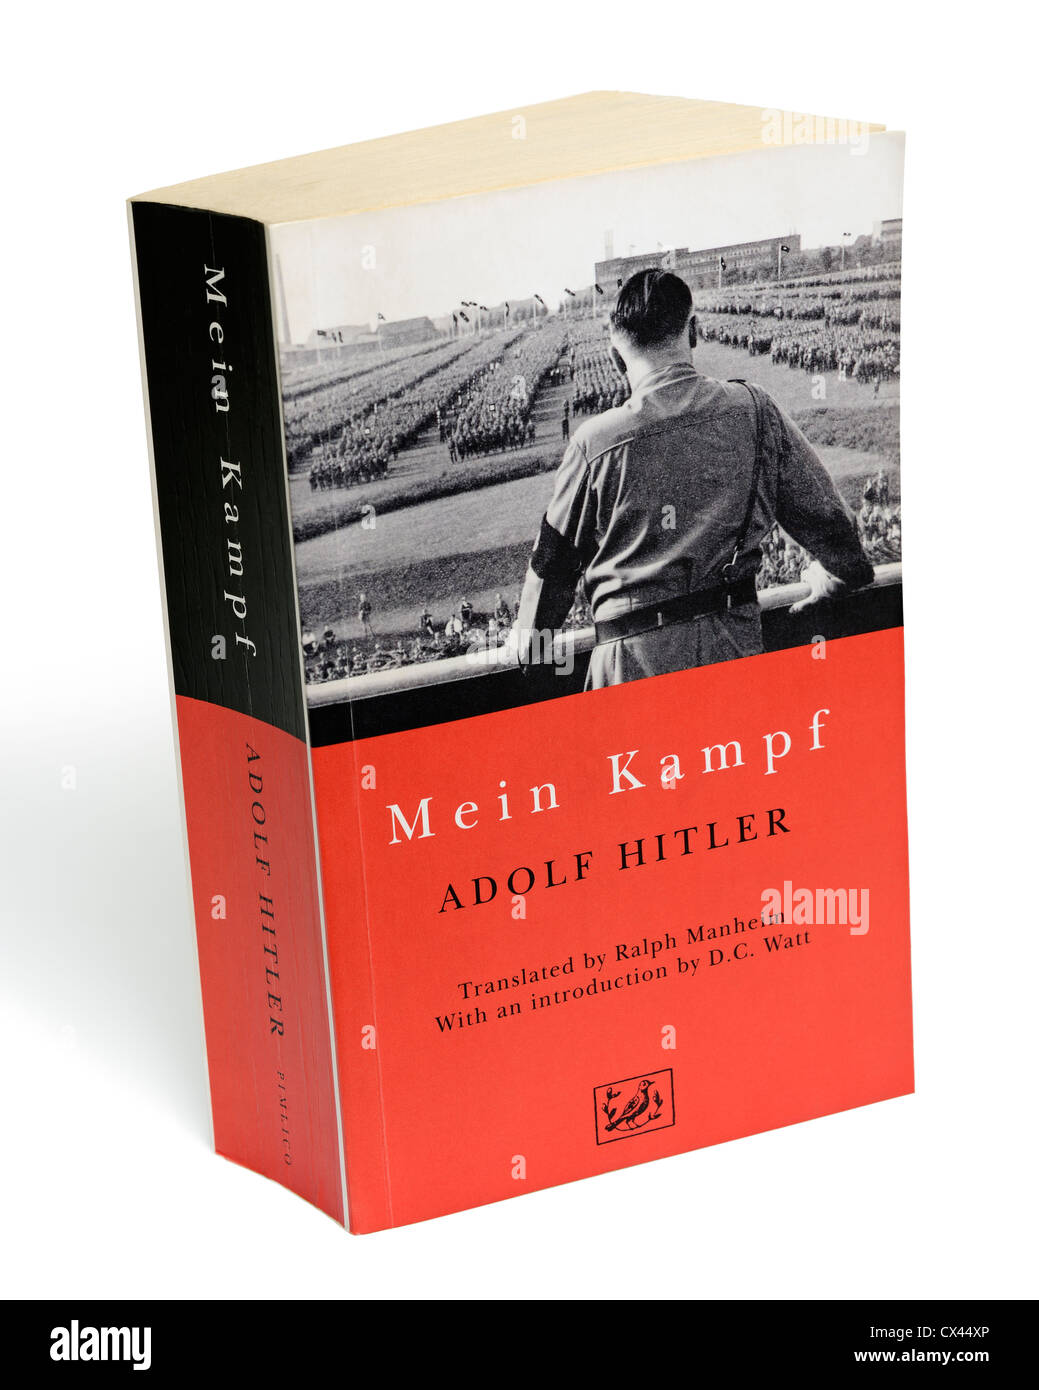 Mein Kampf. Book by Adolf Hitler, Containing His Autobiography and Nazi Political Ideology. - Stock Image